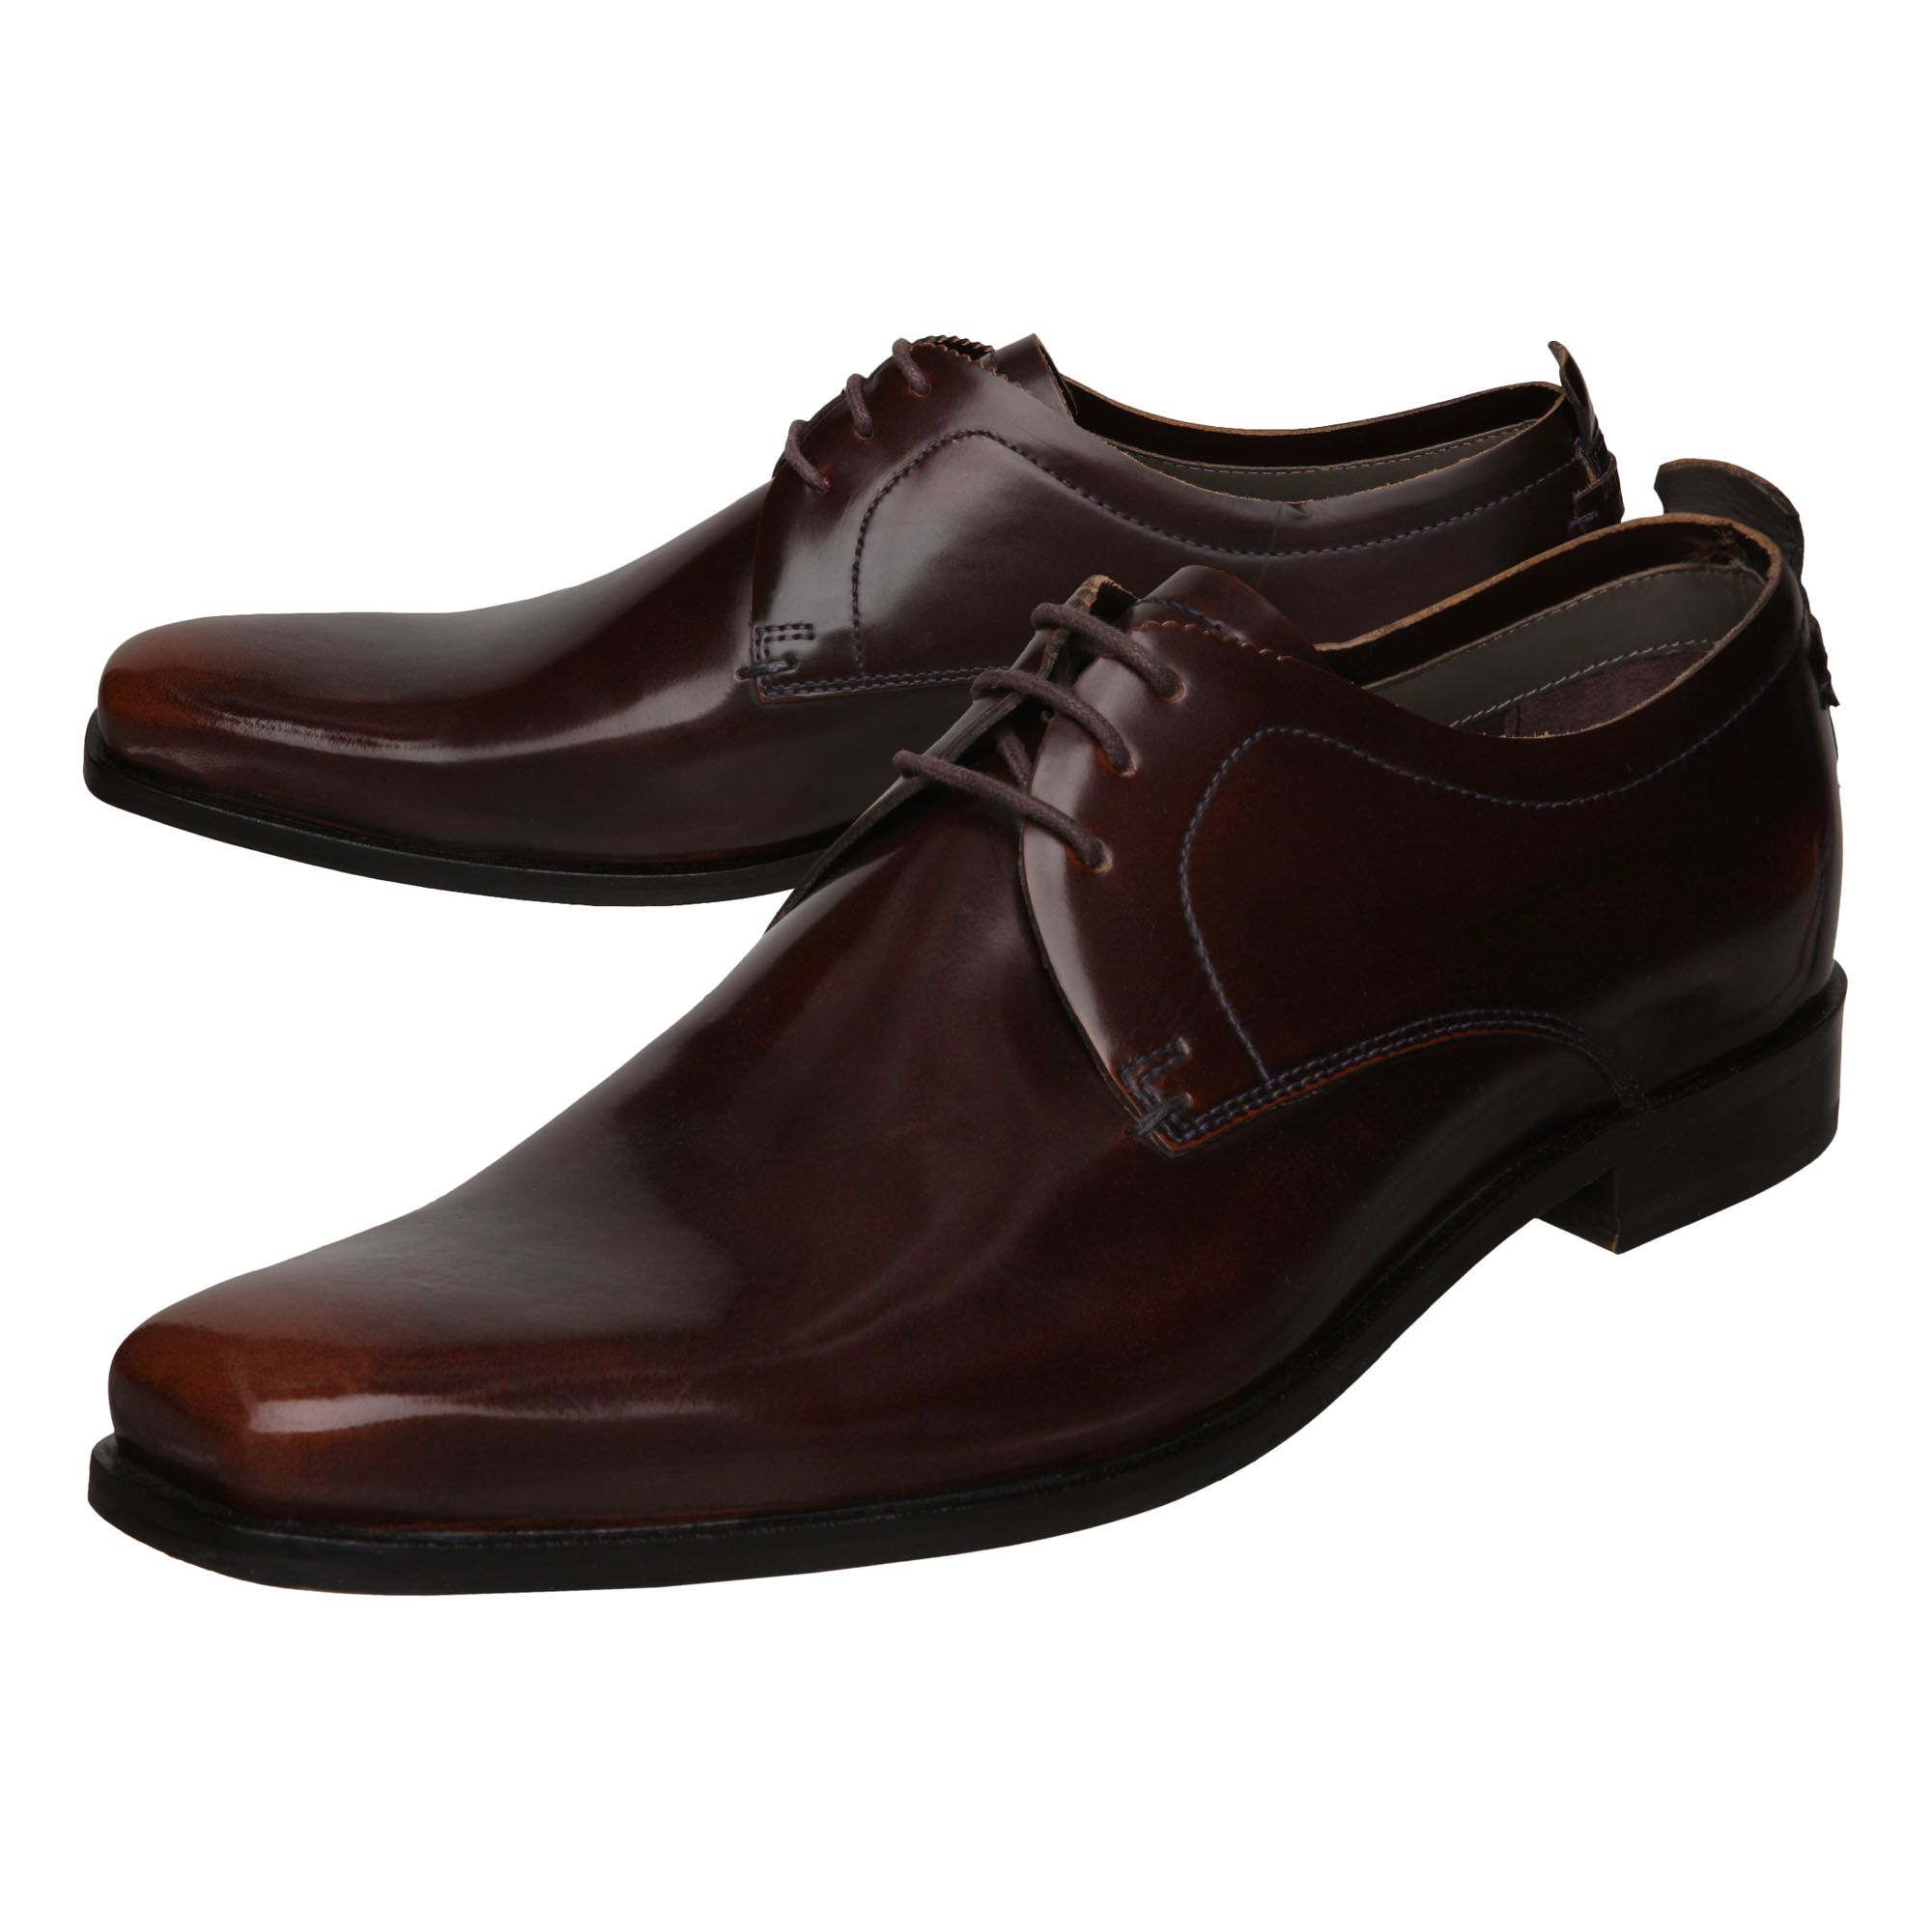 Kerkan formal shoes